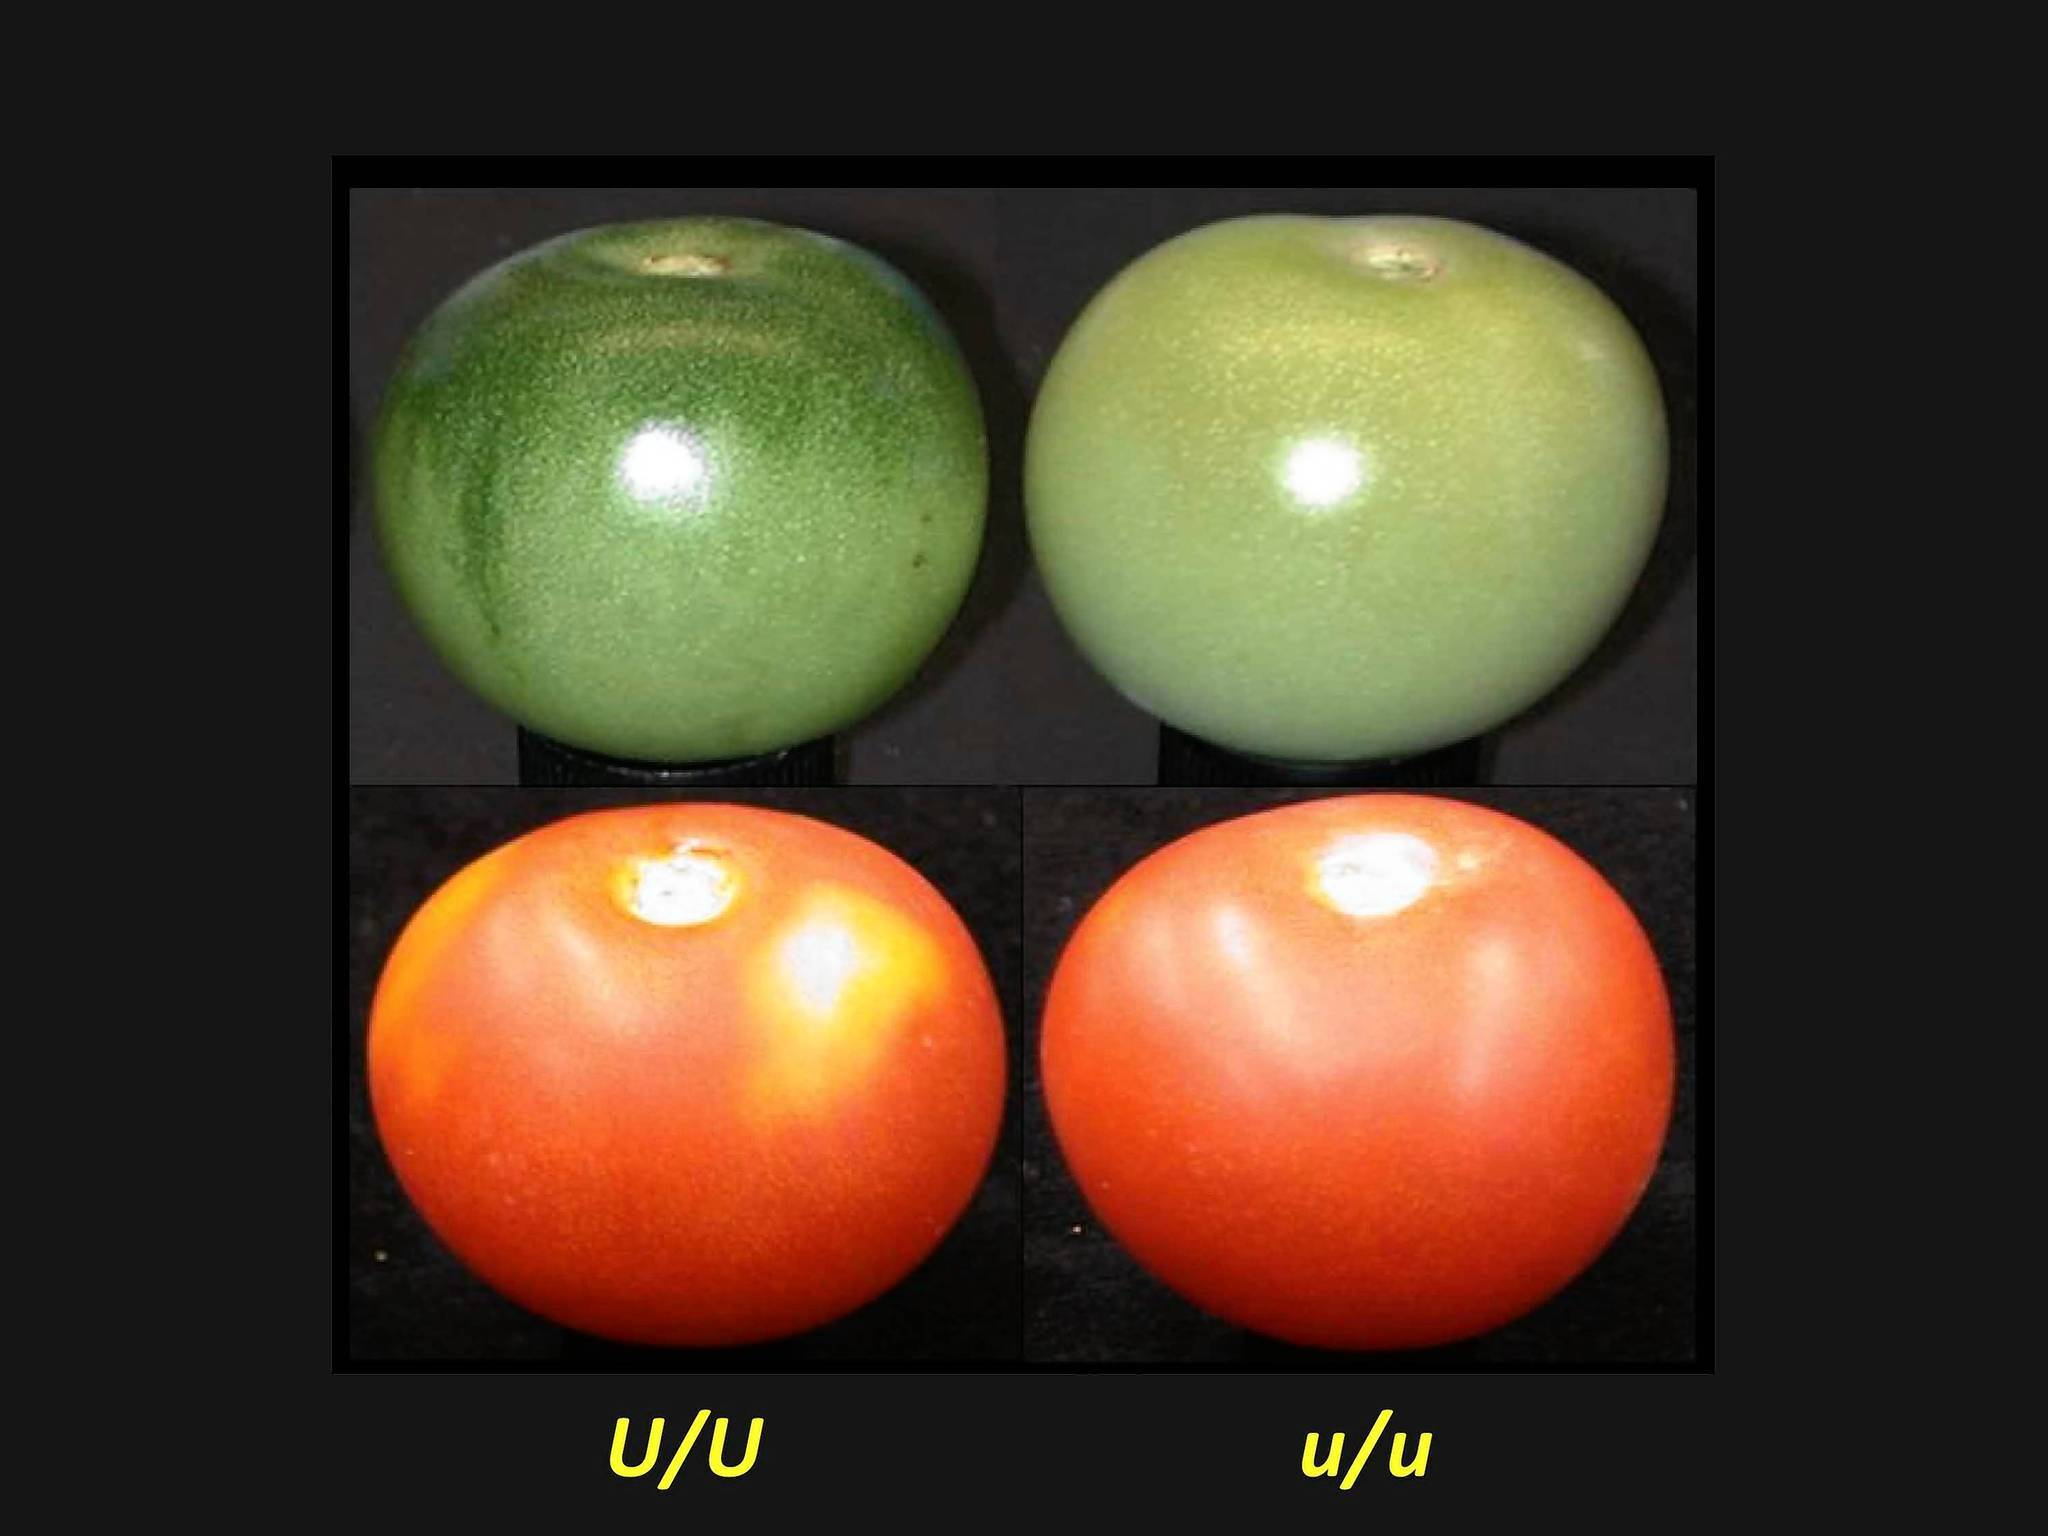 The tomatoes at left are normal, and the two on the right are bred for uniform color. New research suggests the ones on the left are likely to be tastier.